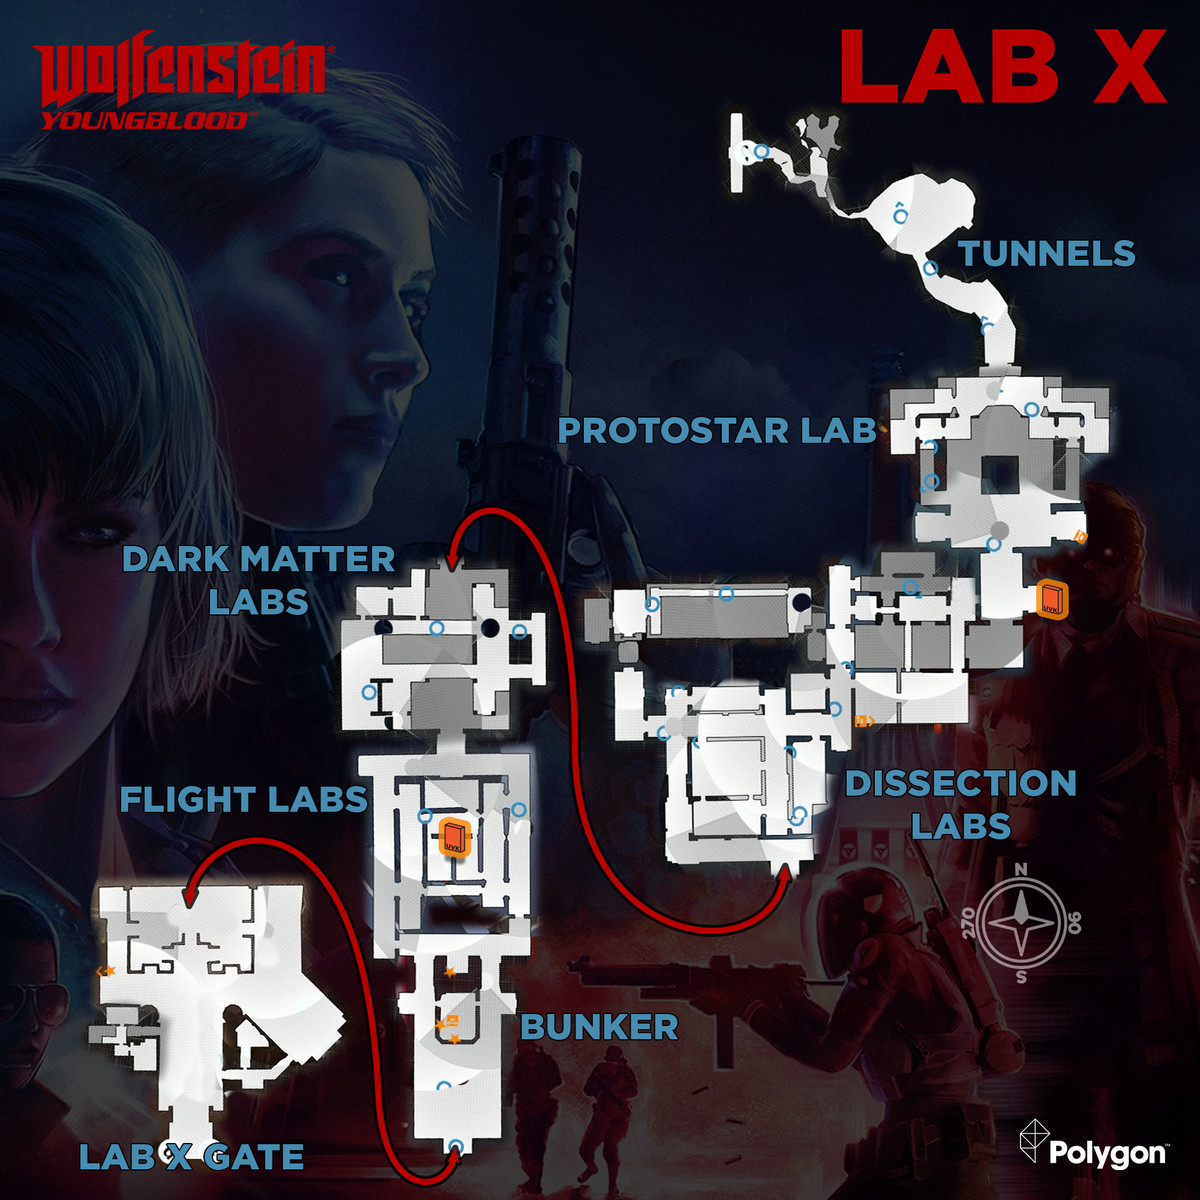 Wolfenstein: Youngblood Lab X UVK Cover collectibles map